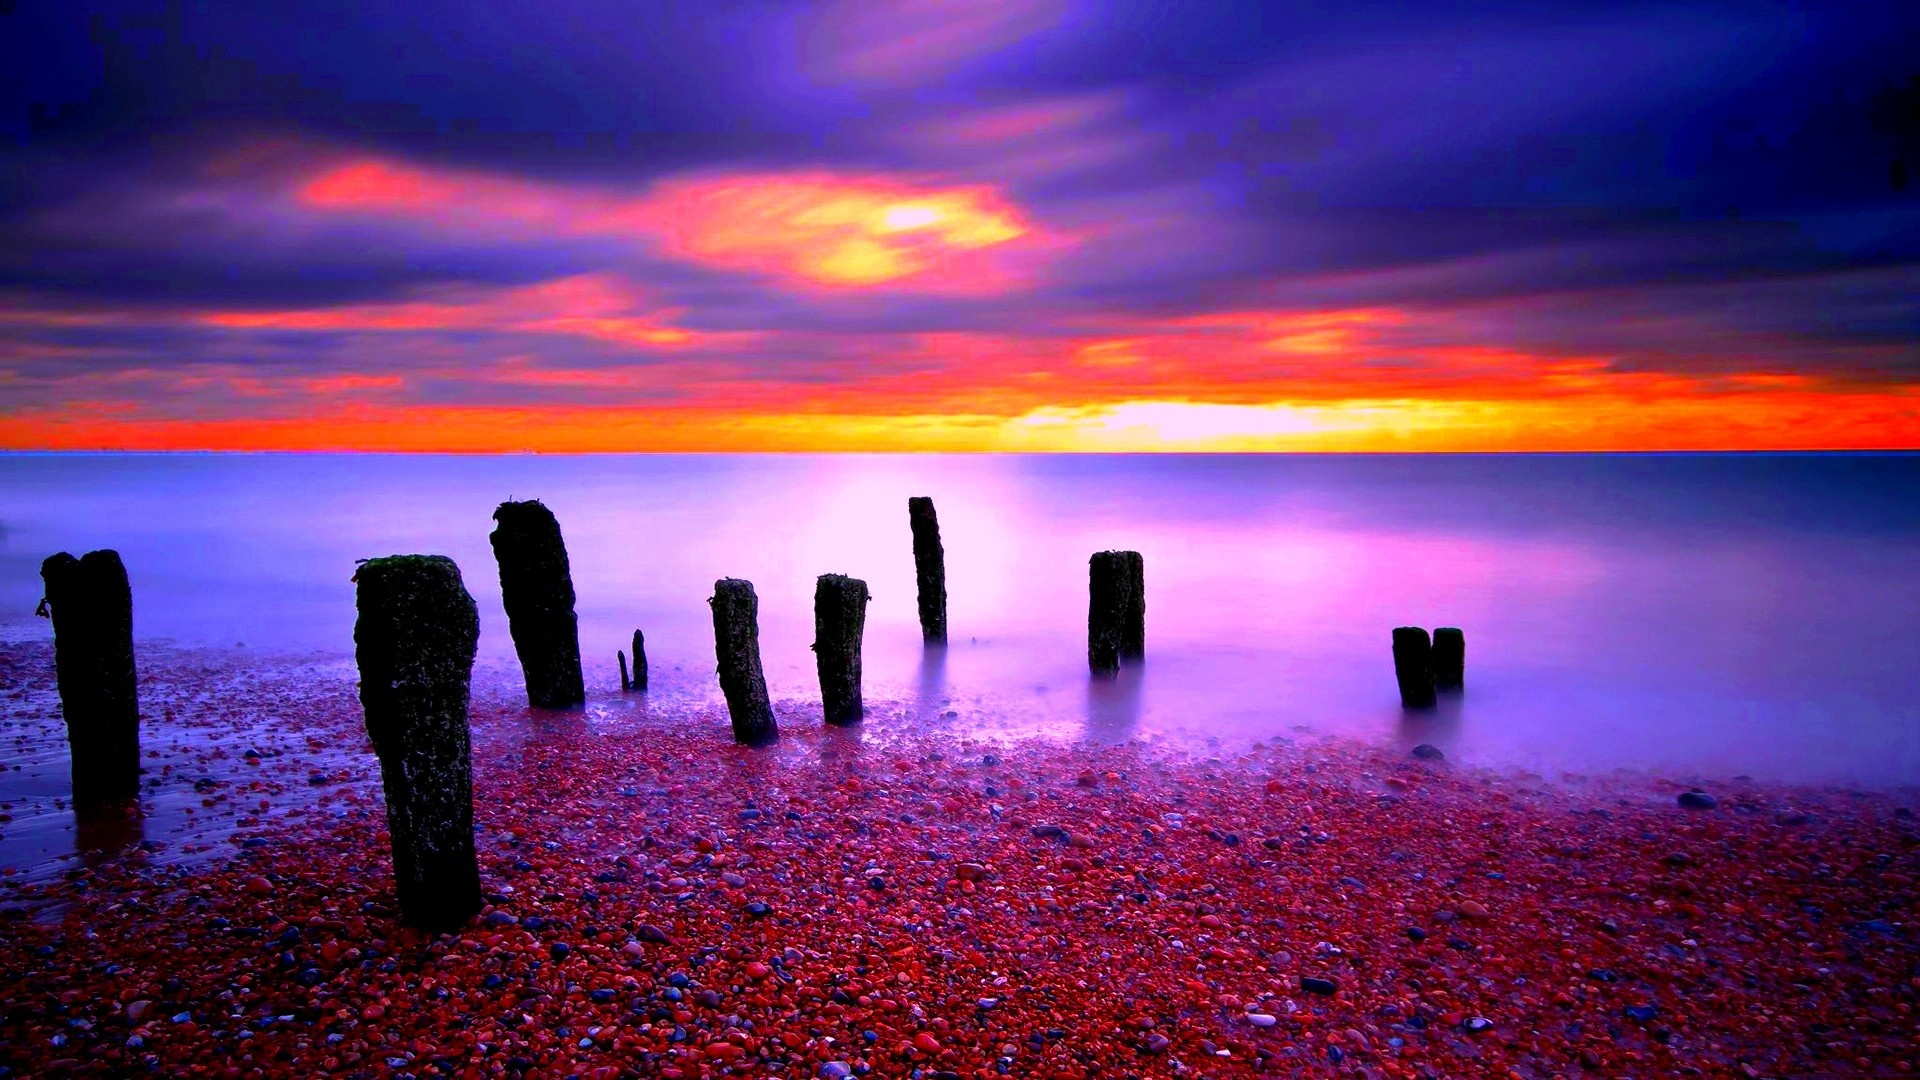 Download Colorful Sunset Wallpaper Gallery